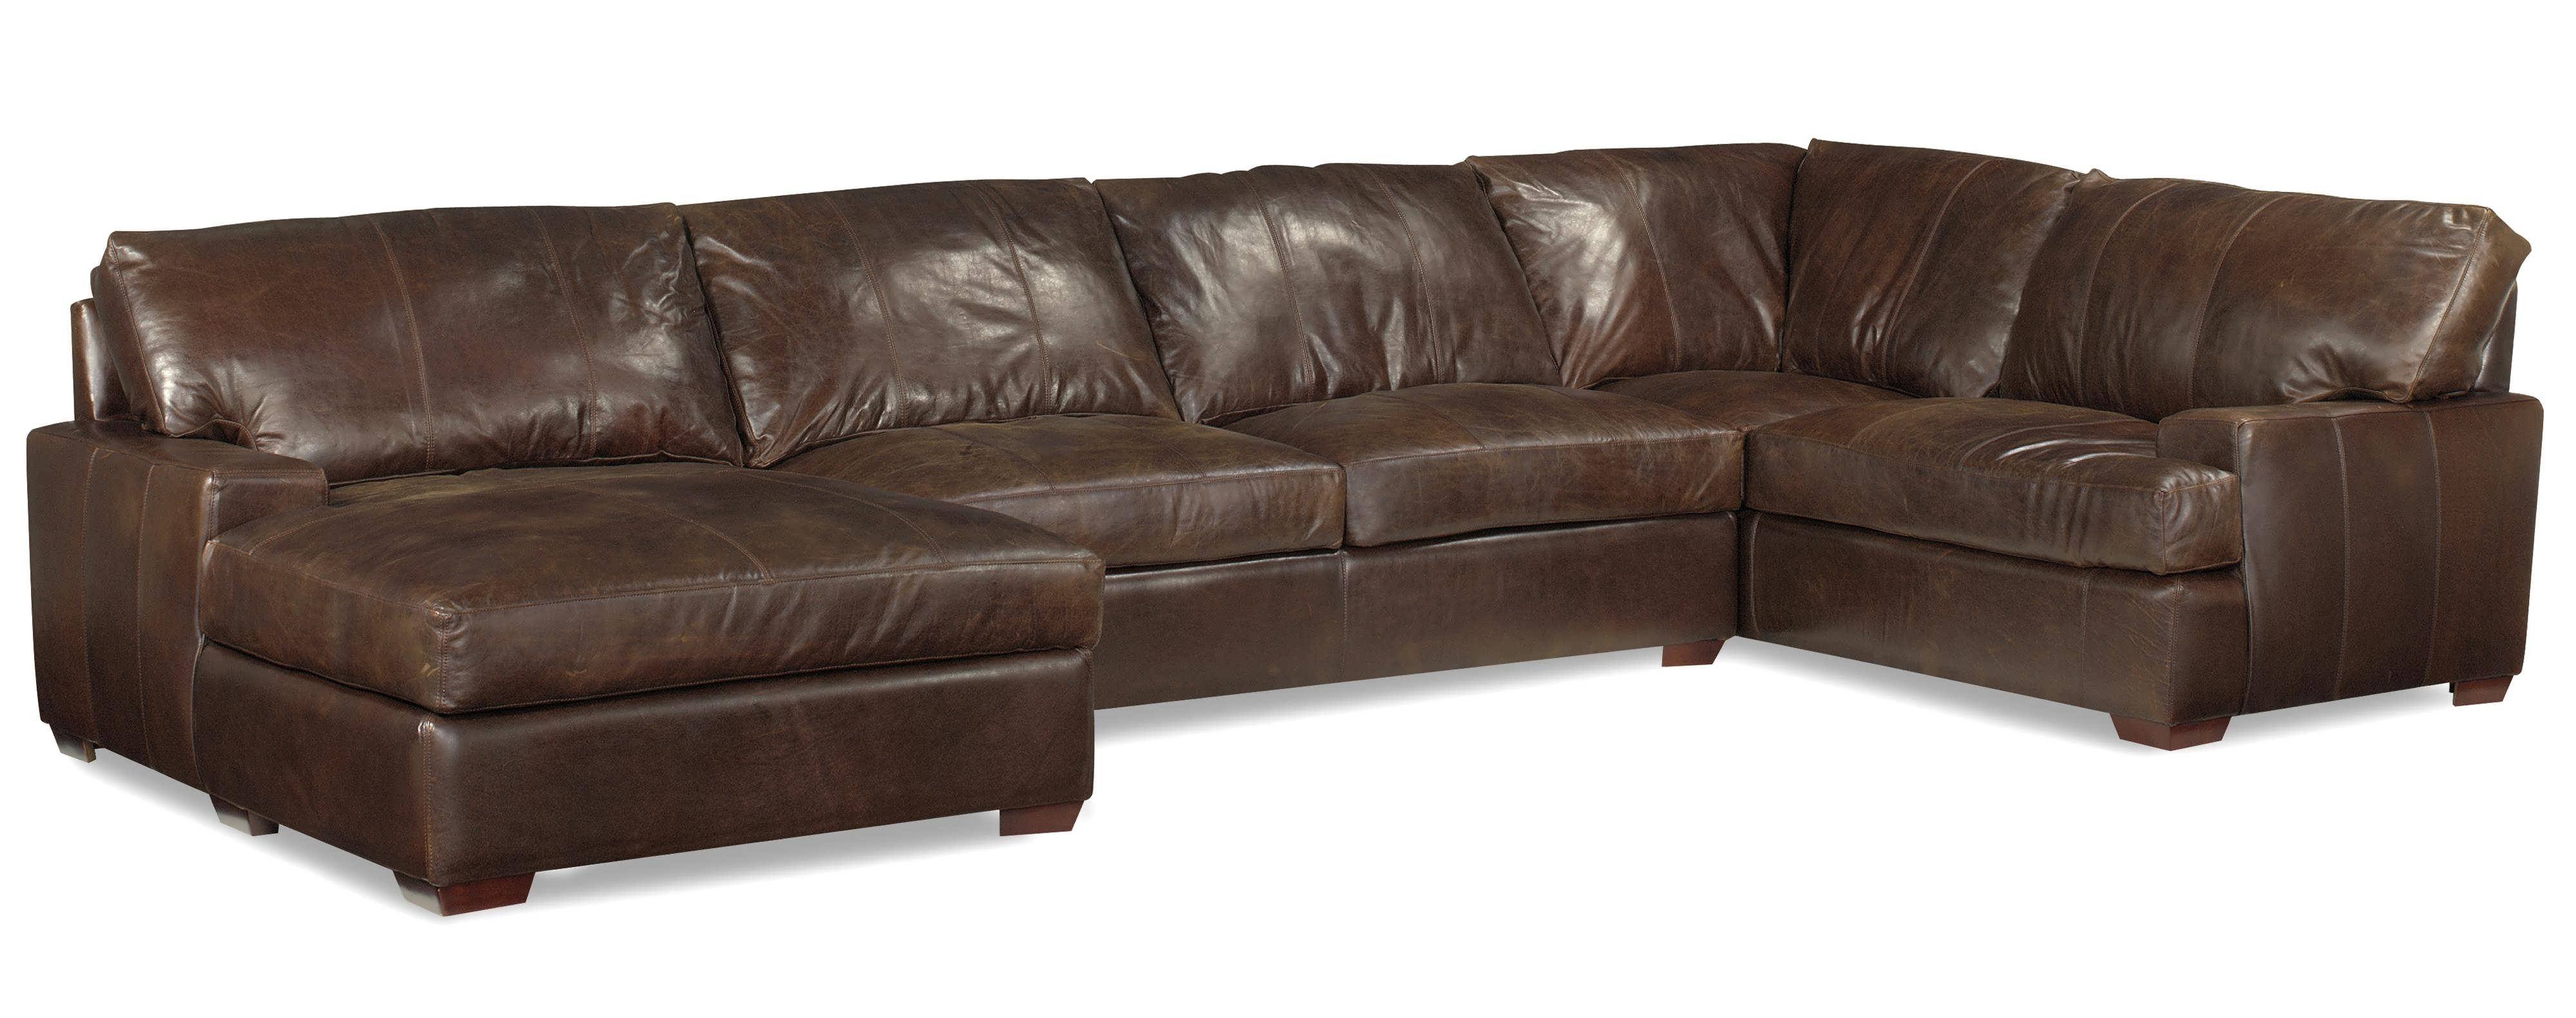 Fashionable Sofa : Small Sectional Couch Best Sectional Sofa Fabric Sectional Regarding Genuine Leather Sectionals With Chaise (View 3 of 15)